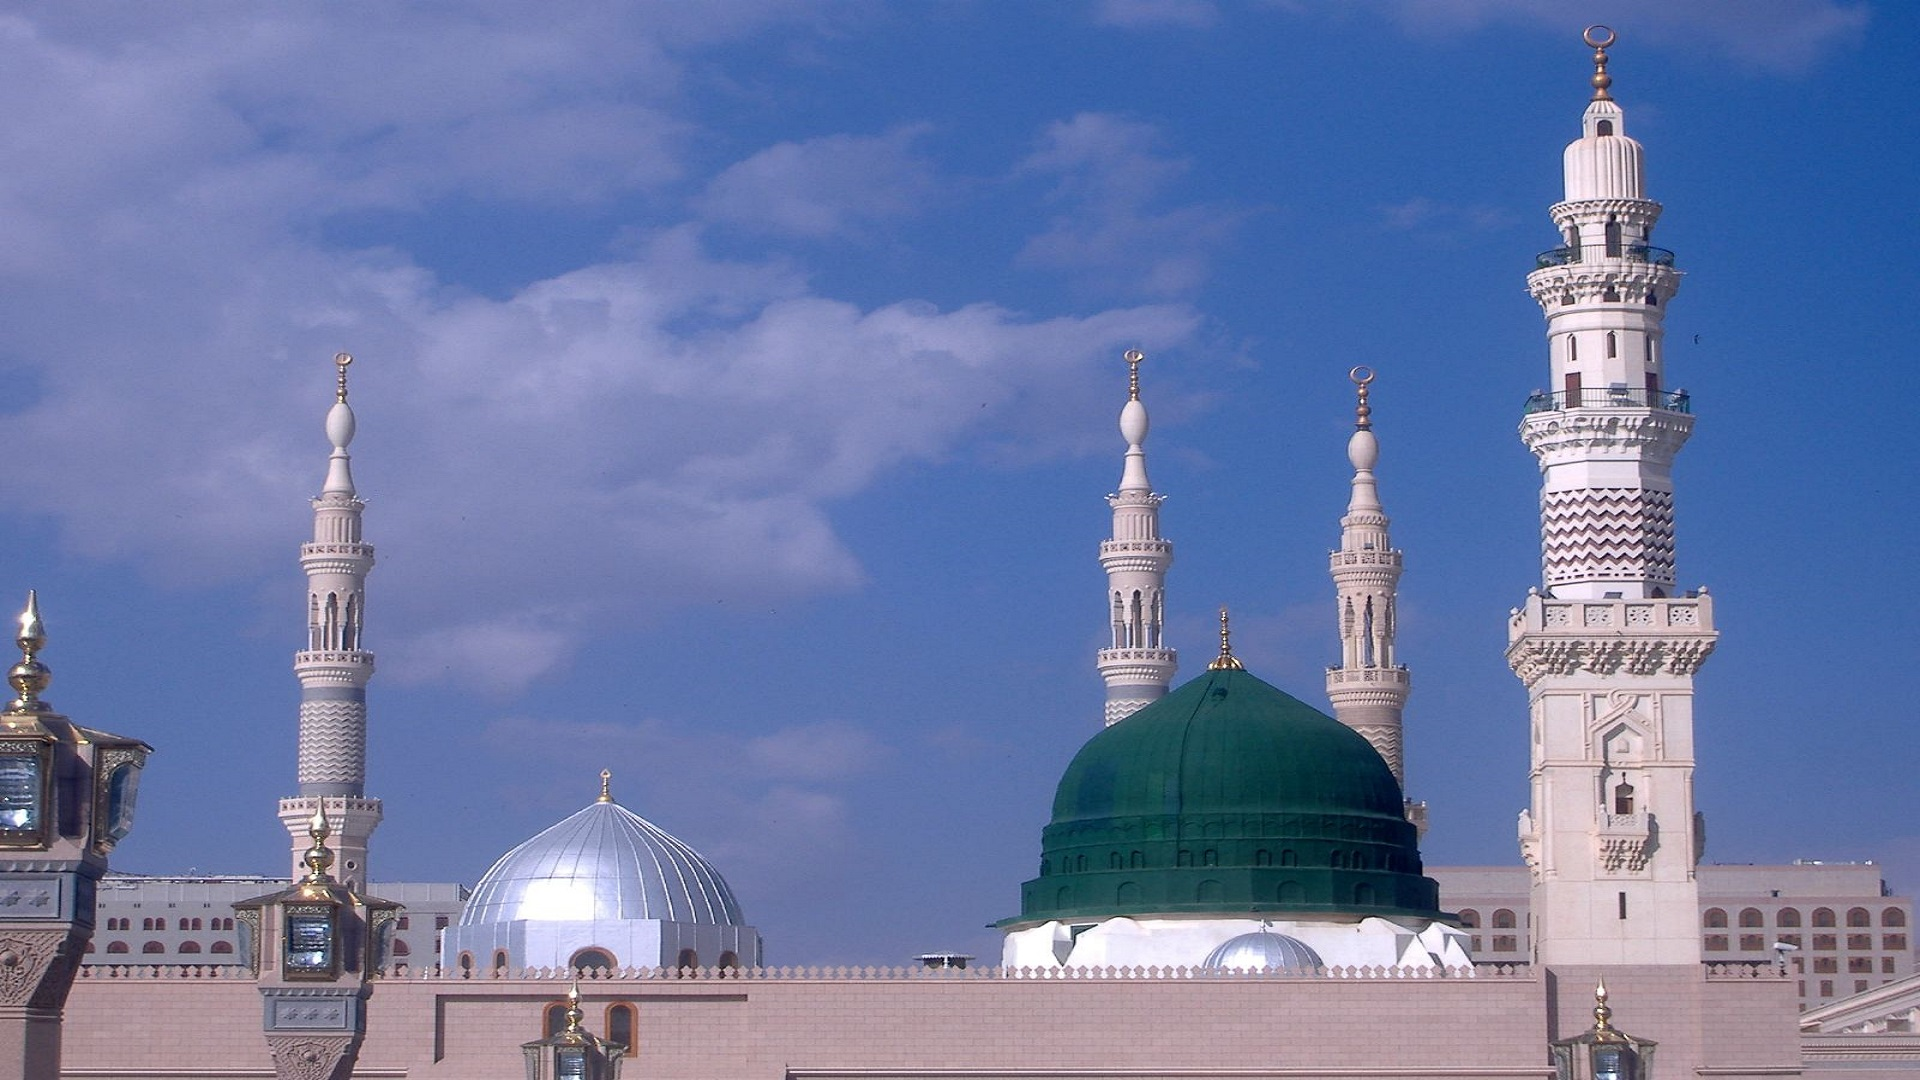 Hd-free-Madina-shareef-top-best-place-wallpapers